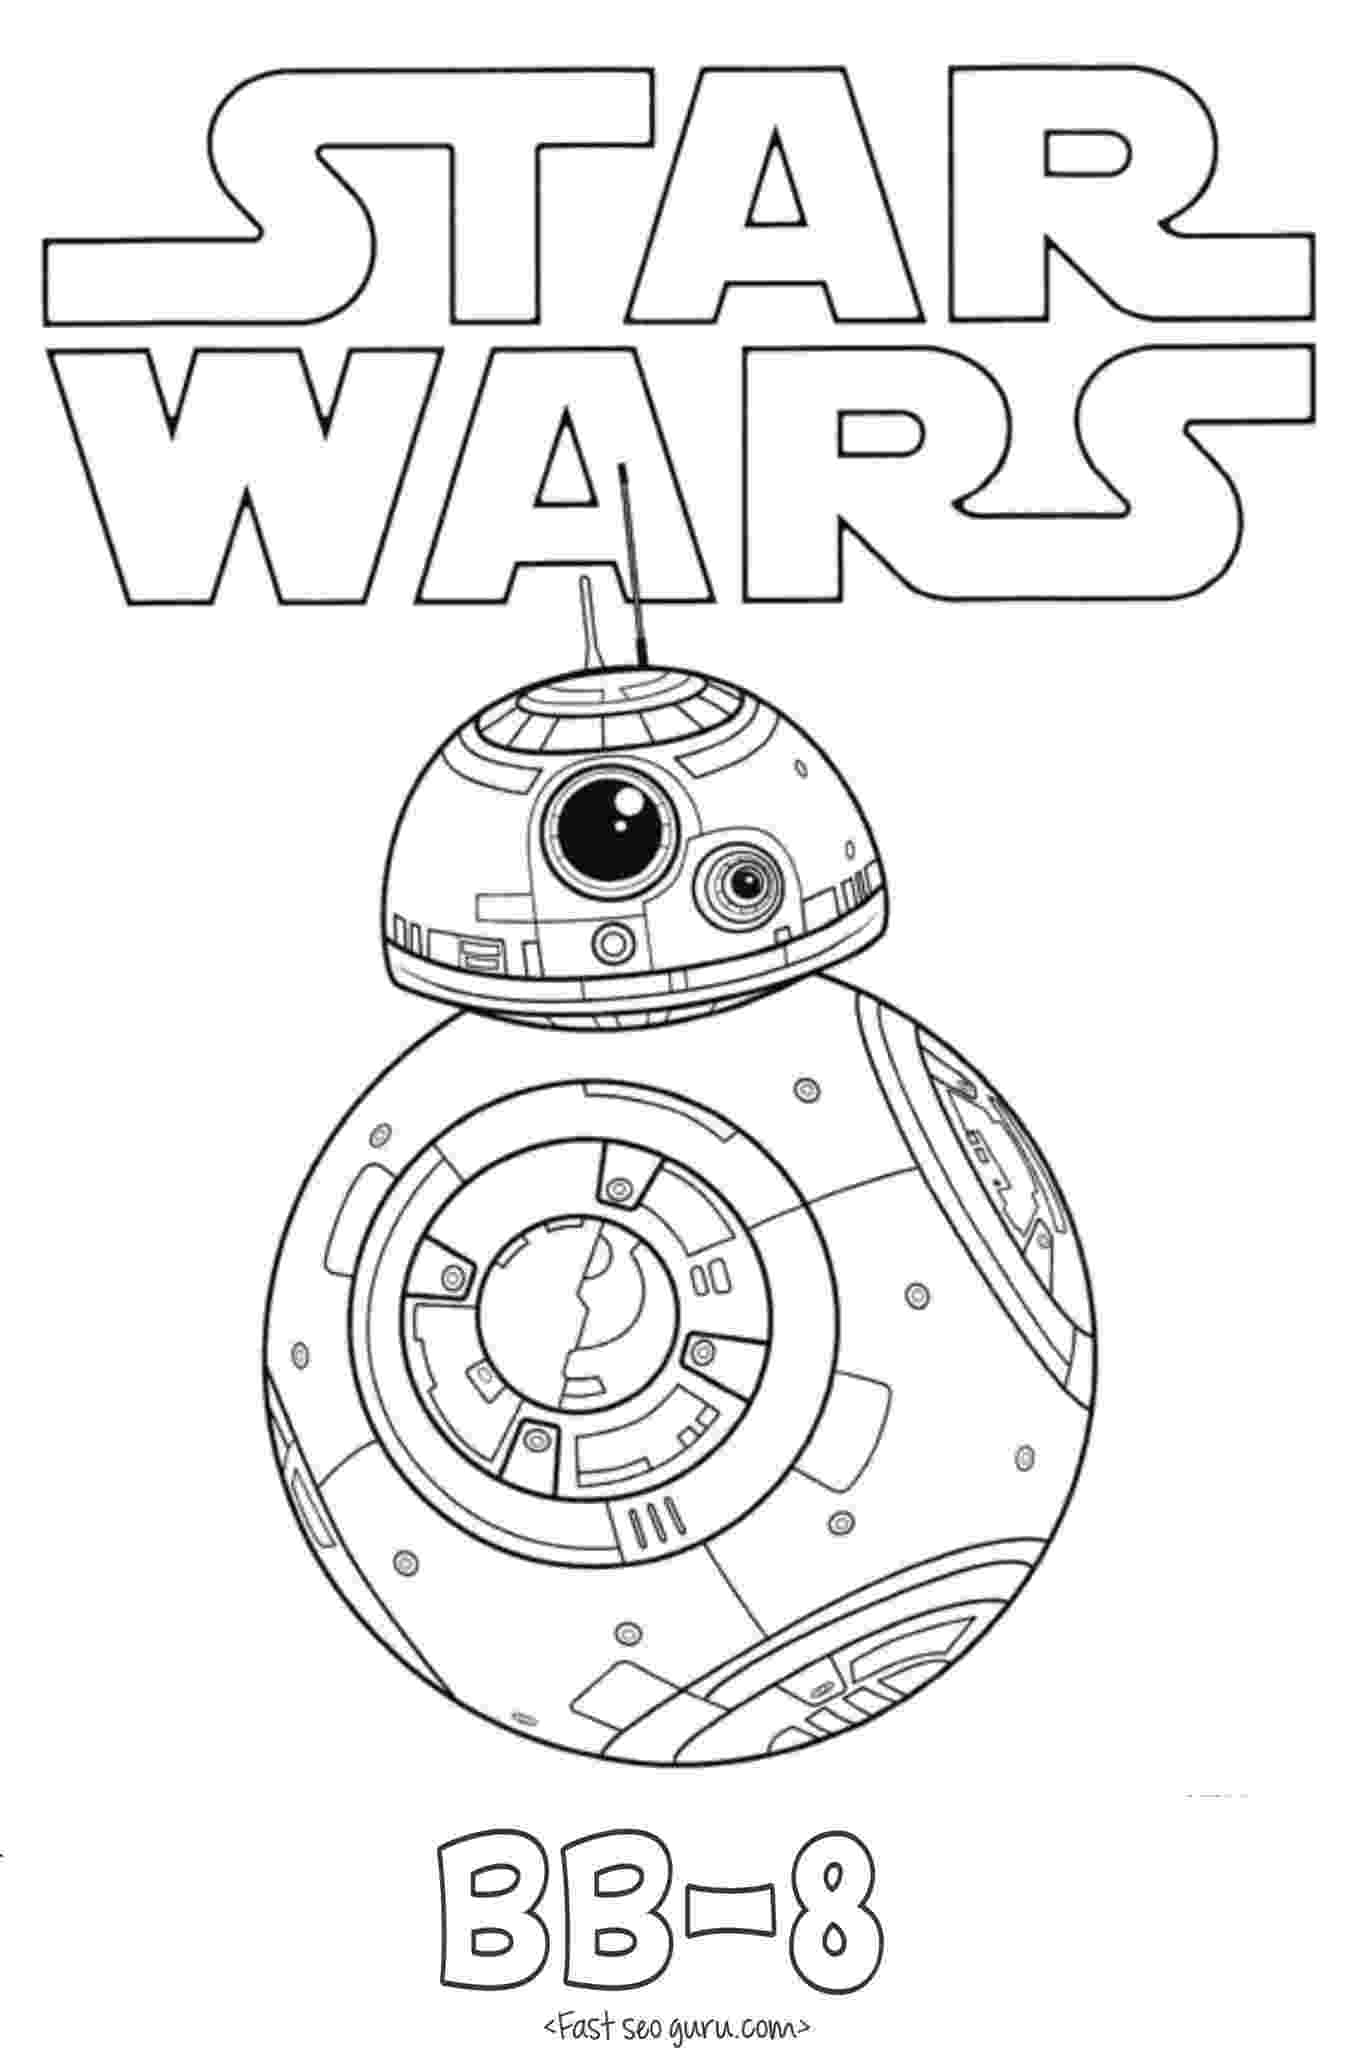 free printable star wars coloring pages printable star wars the force awakens bb 8 coloring pages pages coloring printable free star wars